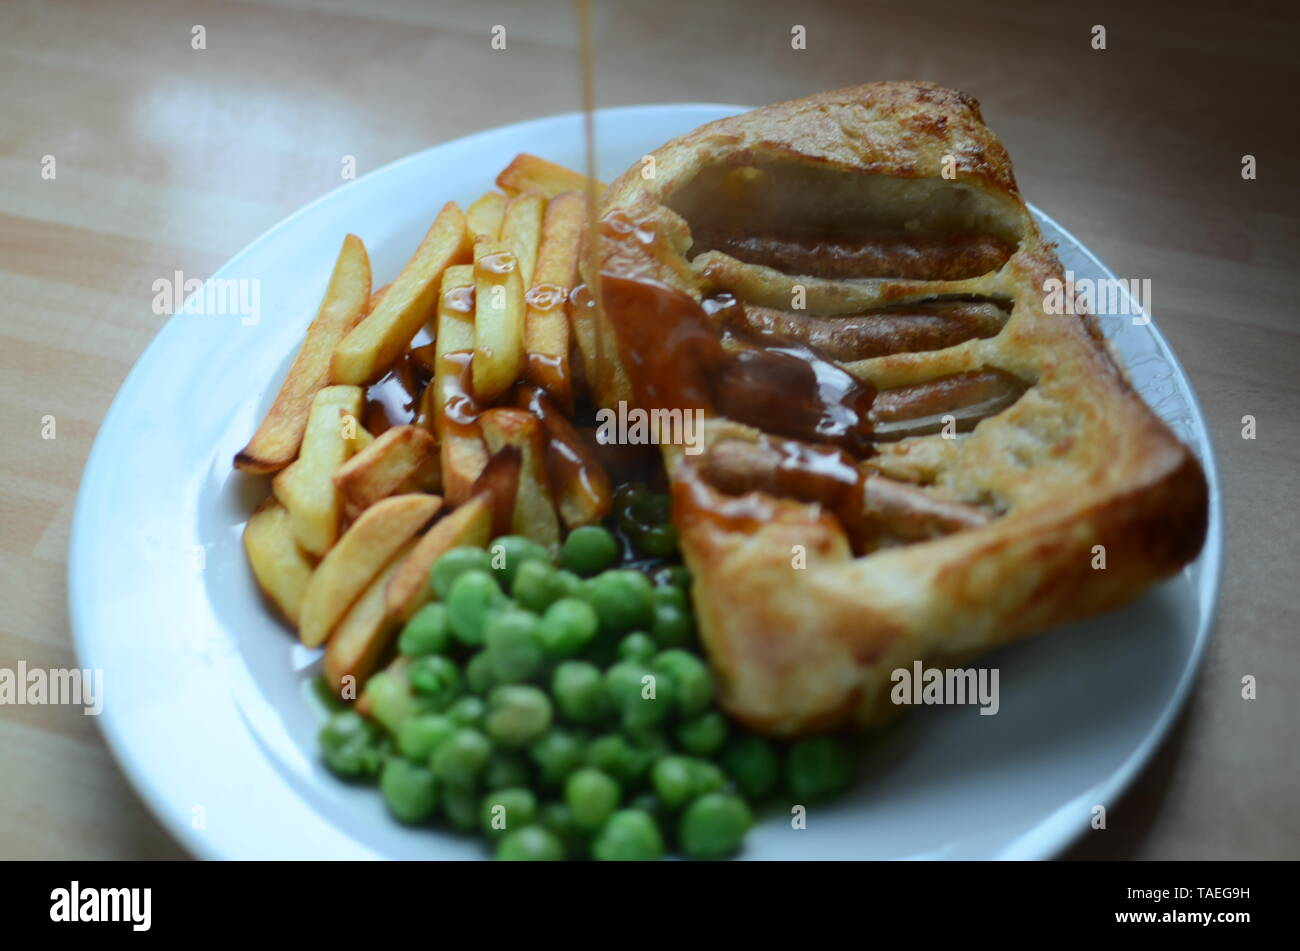 """Home cooked Sausage Toad, Traditional British """"Toad in the Hole"""" meal Stock Photo"""